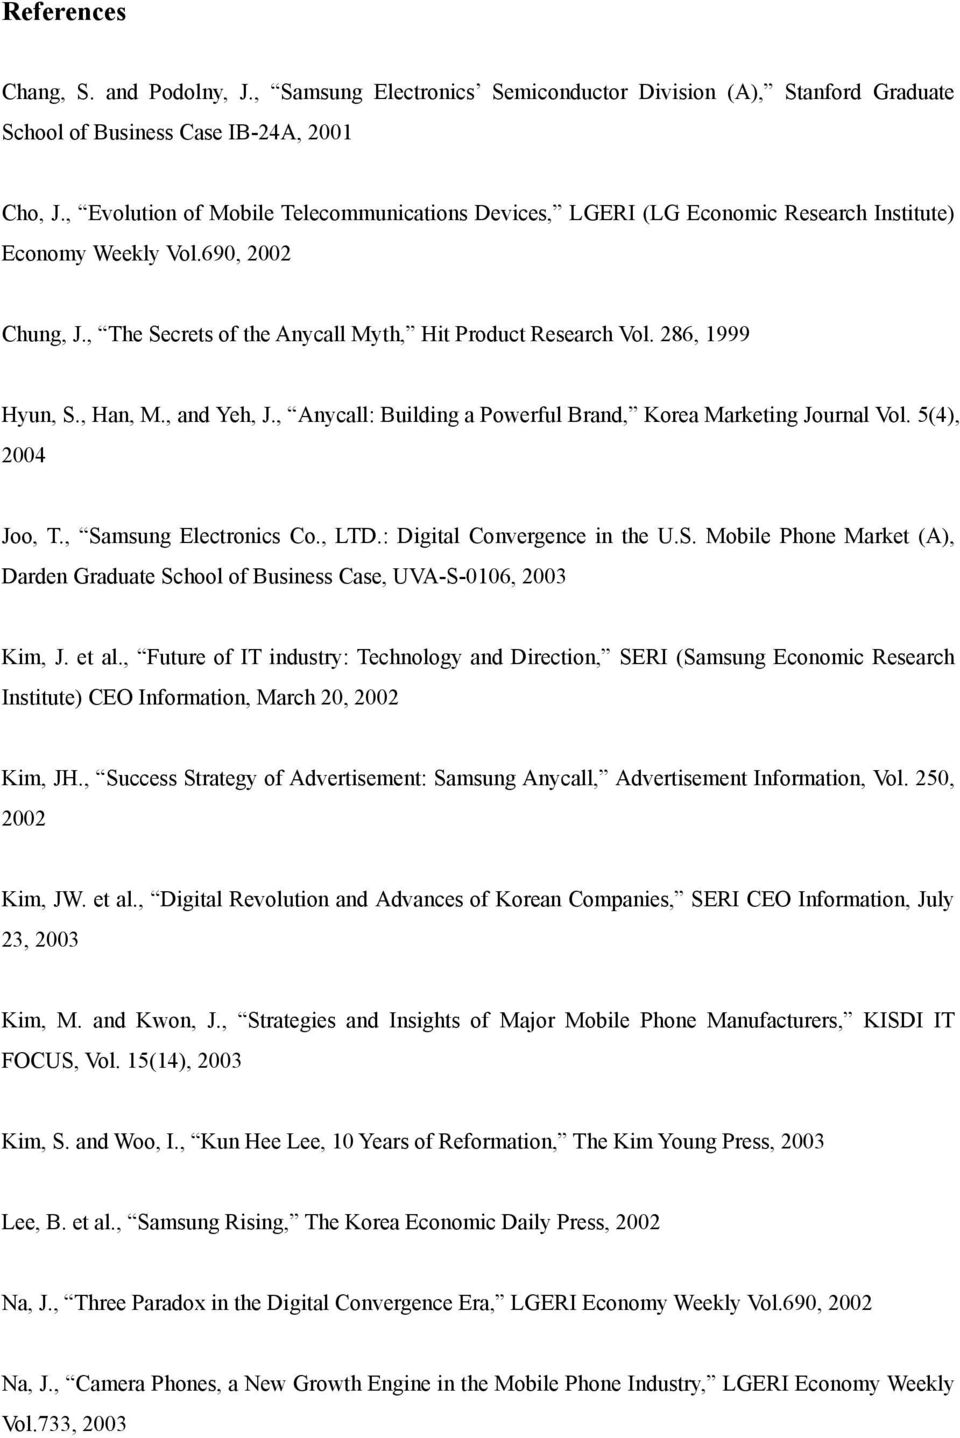 286, 1999 Hyun, S., Han, M., and Yeh, J., Anycall: Building a Powerful Brand, Korea Marketing Journal Vol. 5(4), 2004 Joo, T., Samsung Electronics Co., LTD.: Digital Convergence in the U.S. Mobile Phone Market (A), Darden Graduate School of Business Case, UVA-S-0106, 2003 Kim, J.